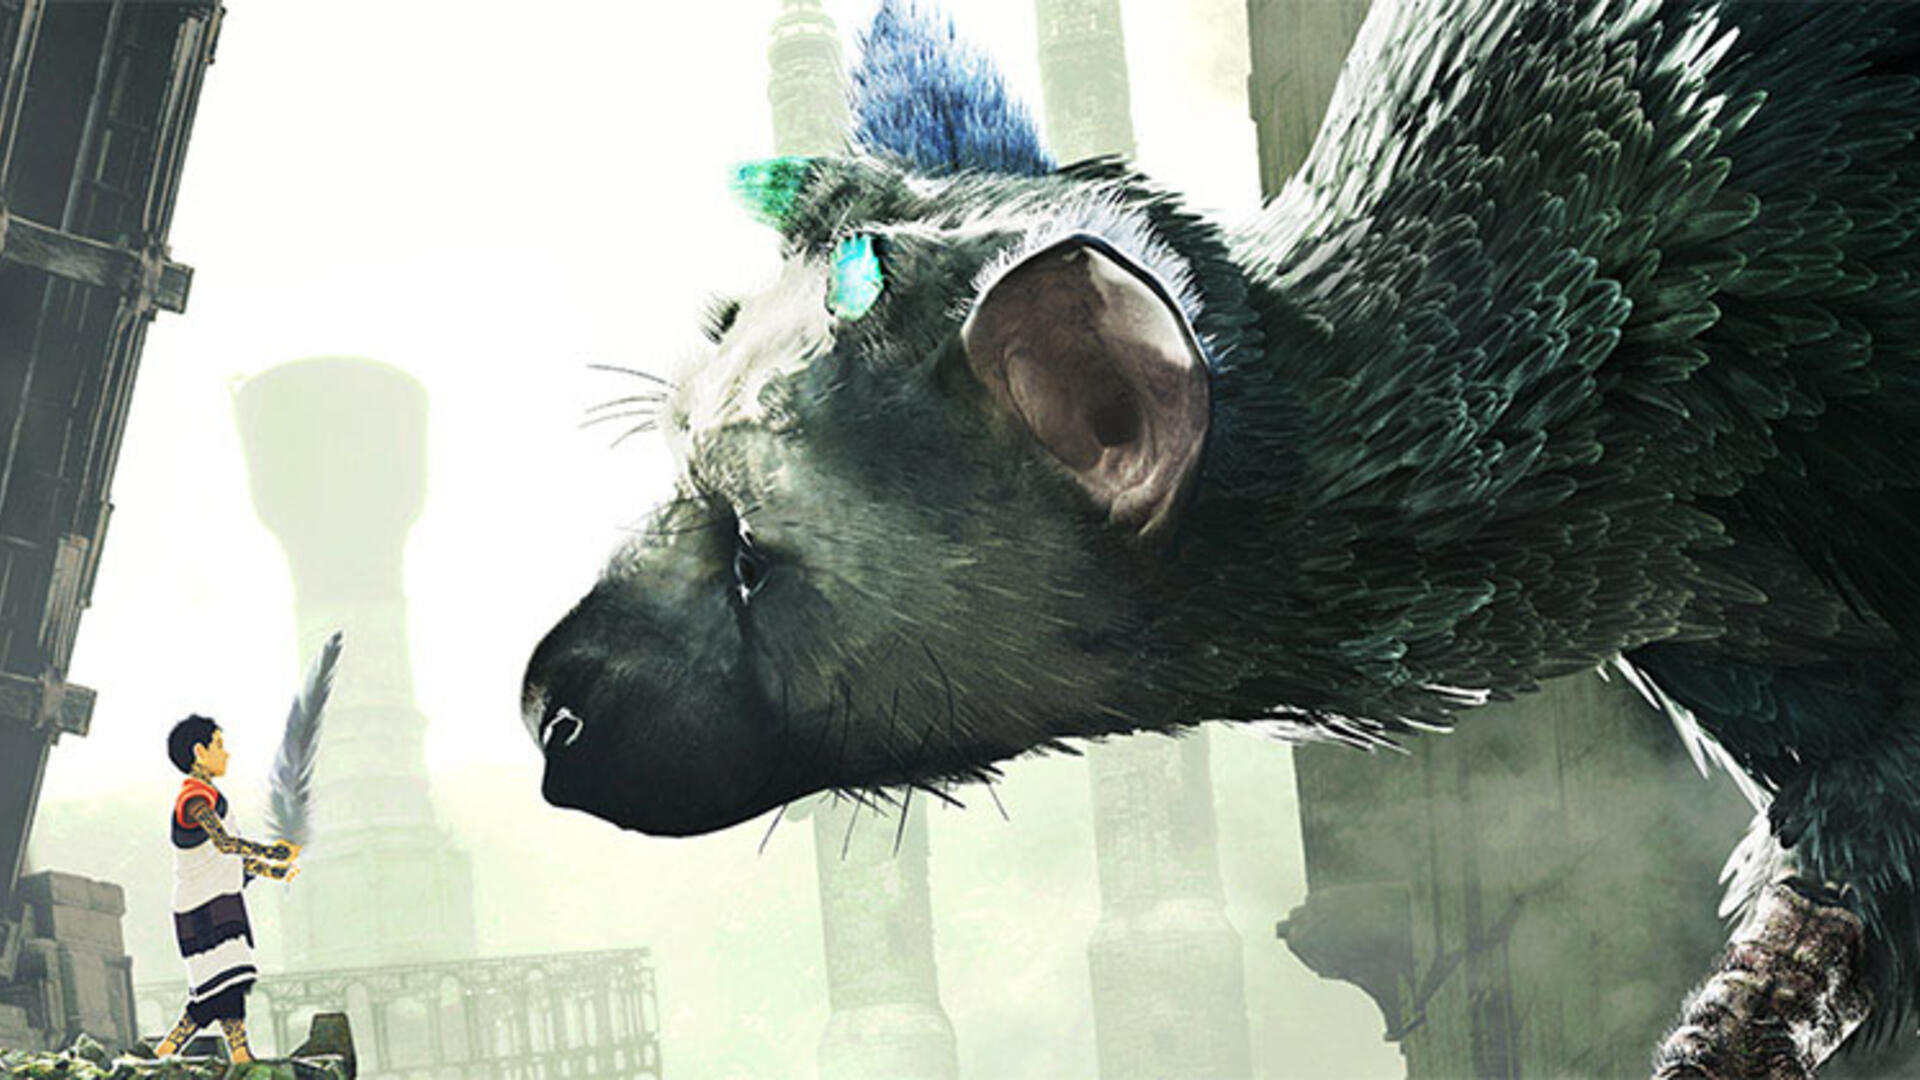 The Last Guardian PlayStation 4 Review: A Powerful Spirit Trapped in a Frail Vessel